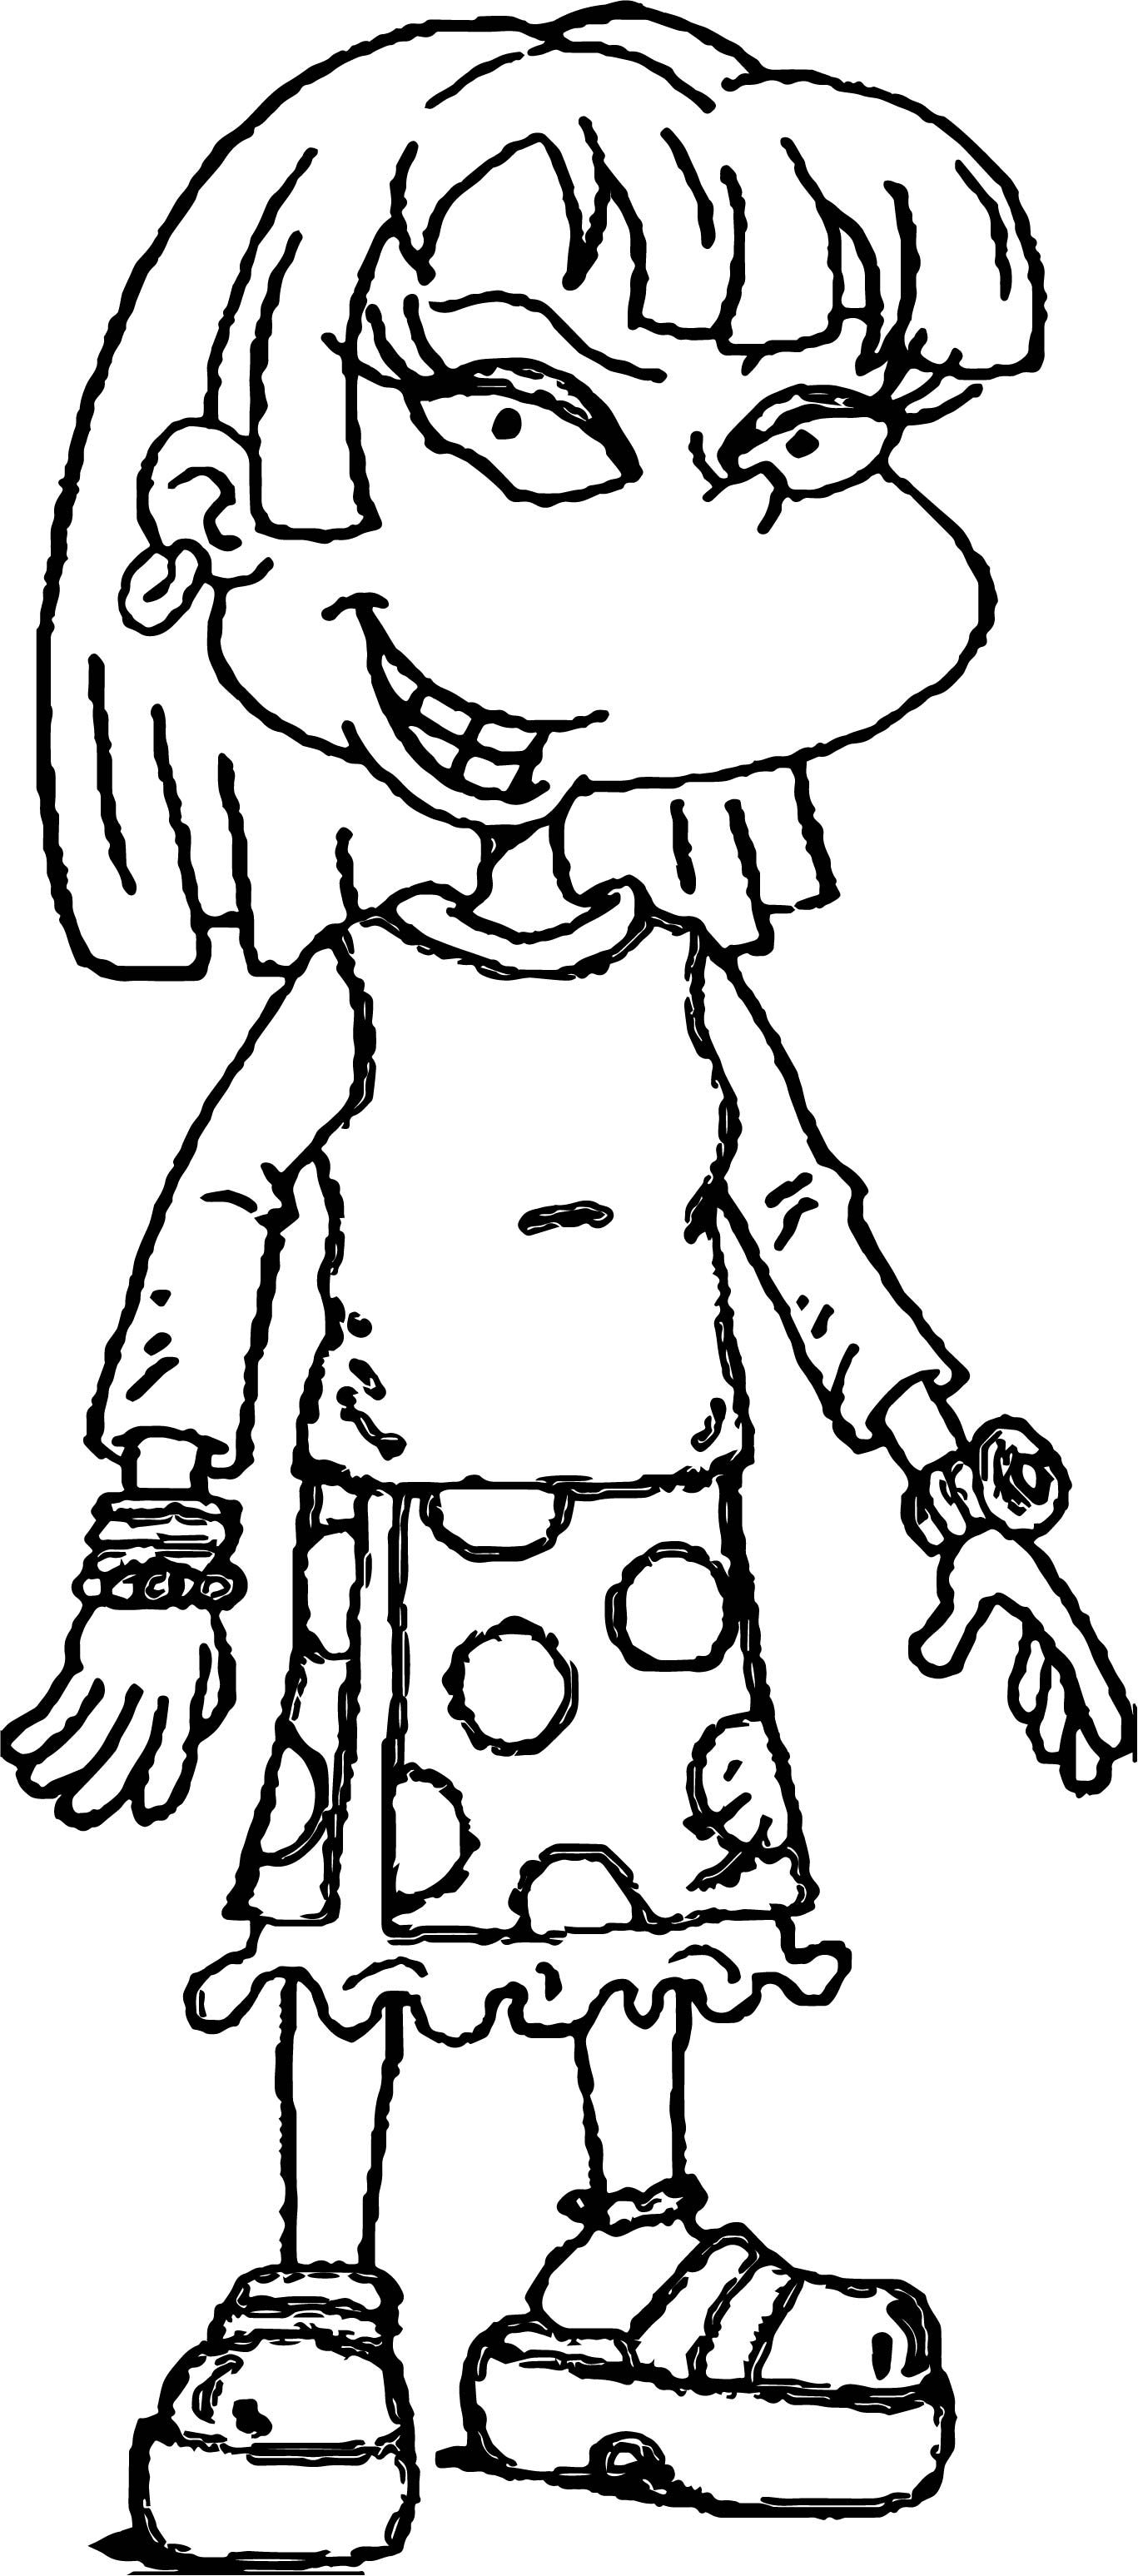 angelica rugrats coloring pages rugrats angelica coloring pages at getdrawings free download coloring angelica rugrats pages